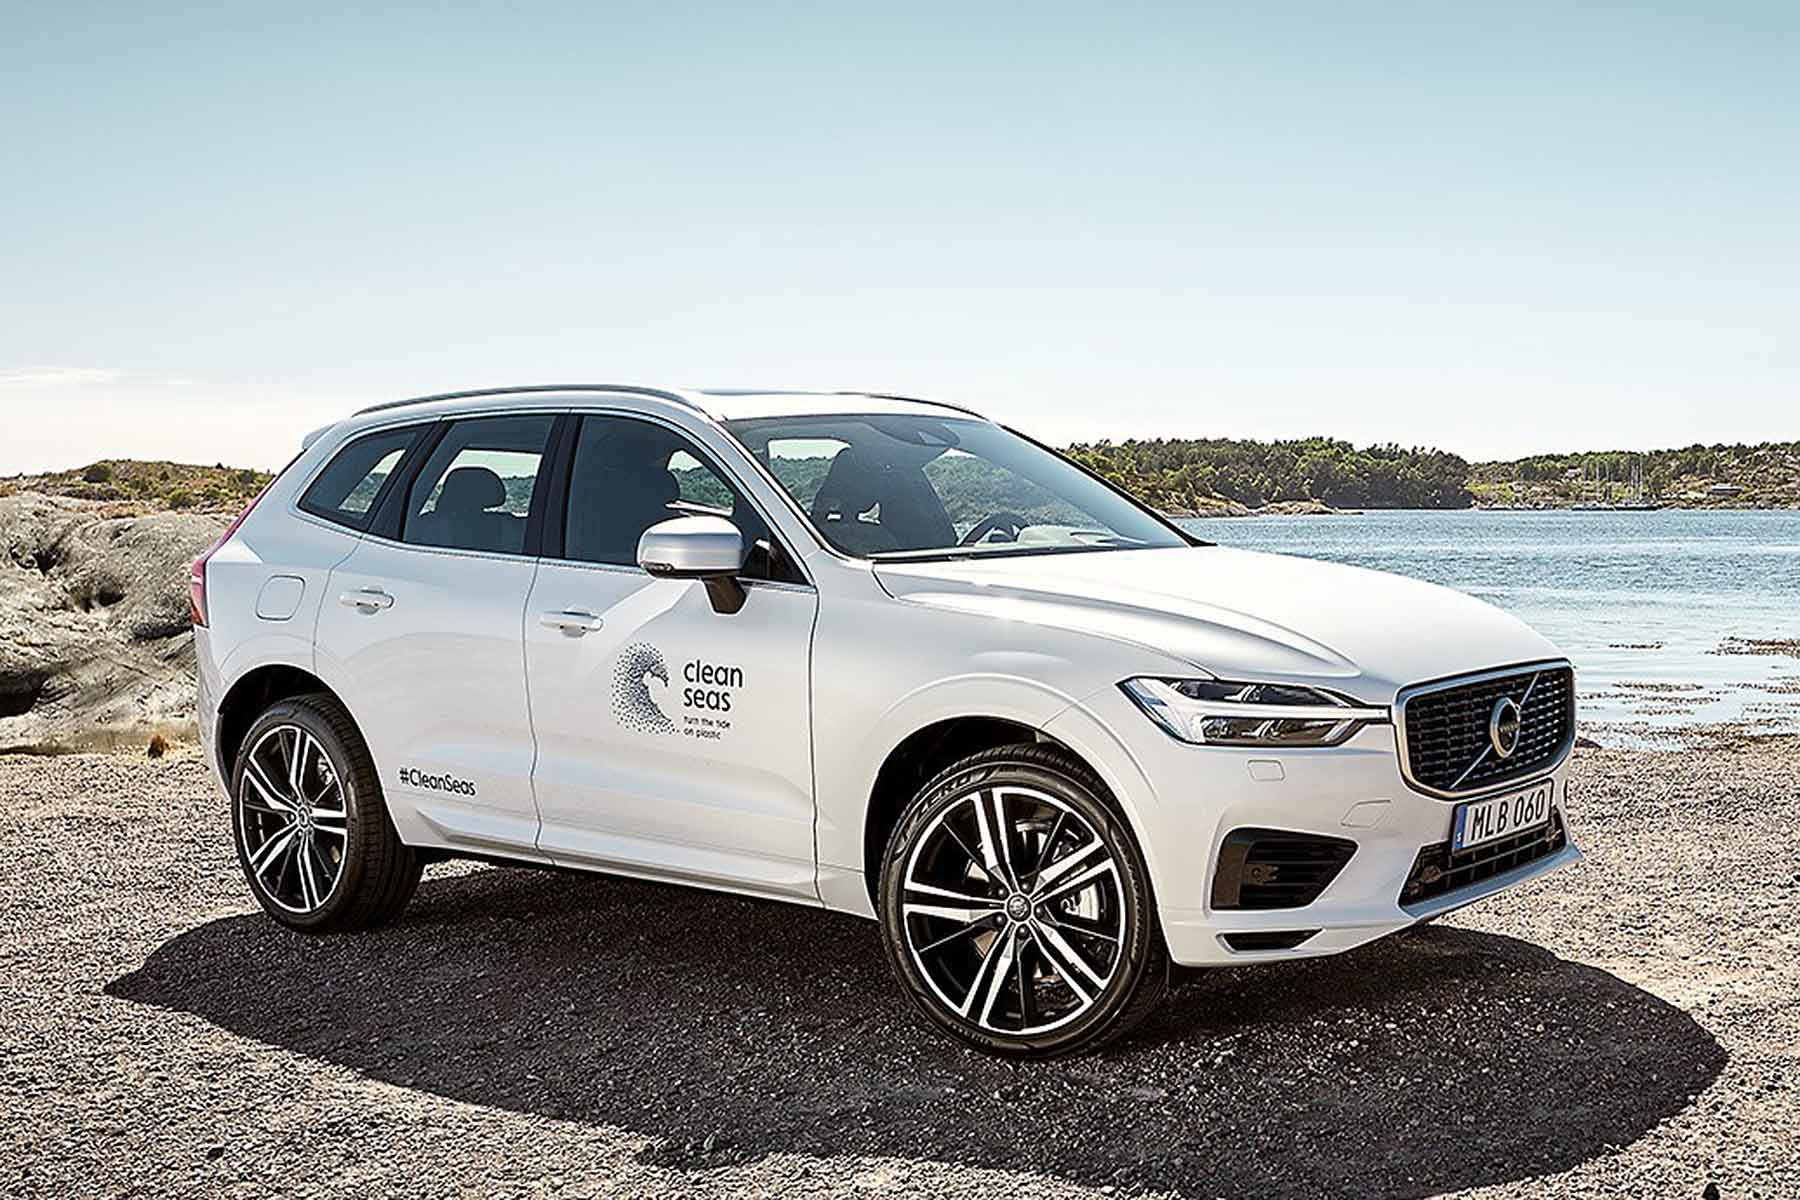 Volvo Sets Target of 25 Percent Sustainable Plastic in Cars by 2025